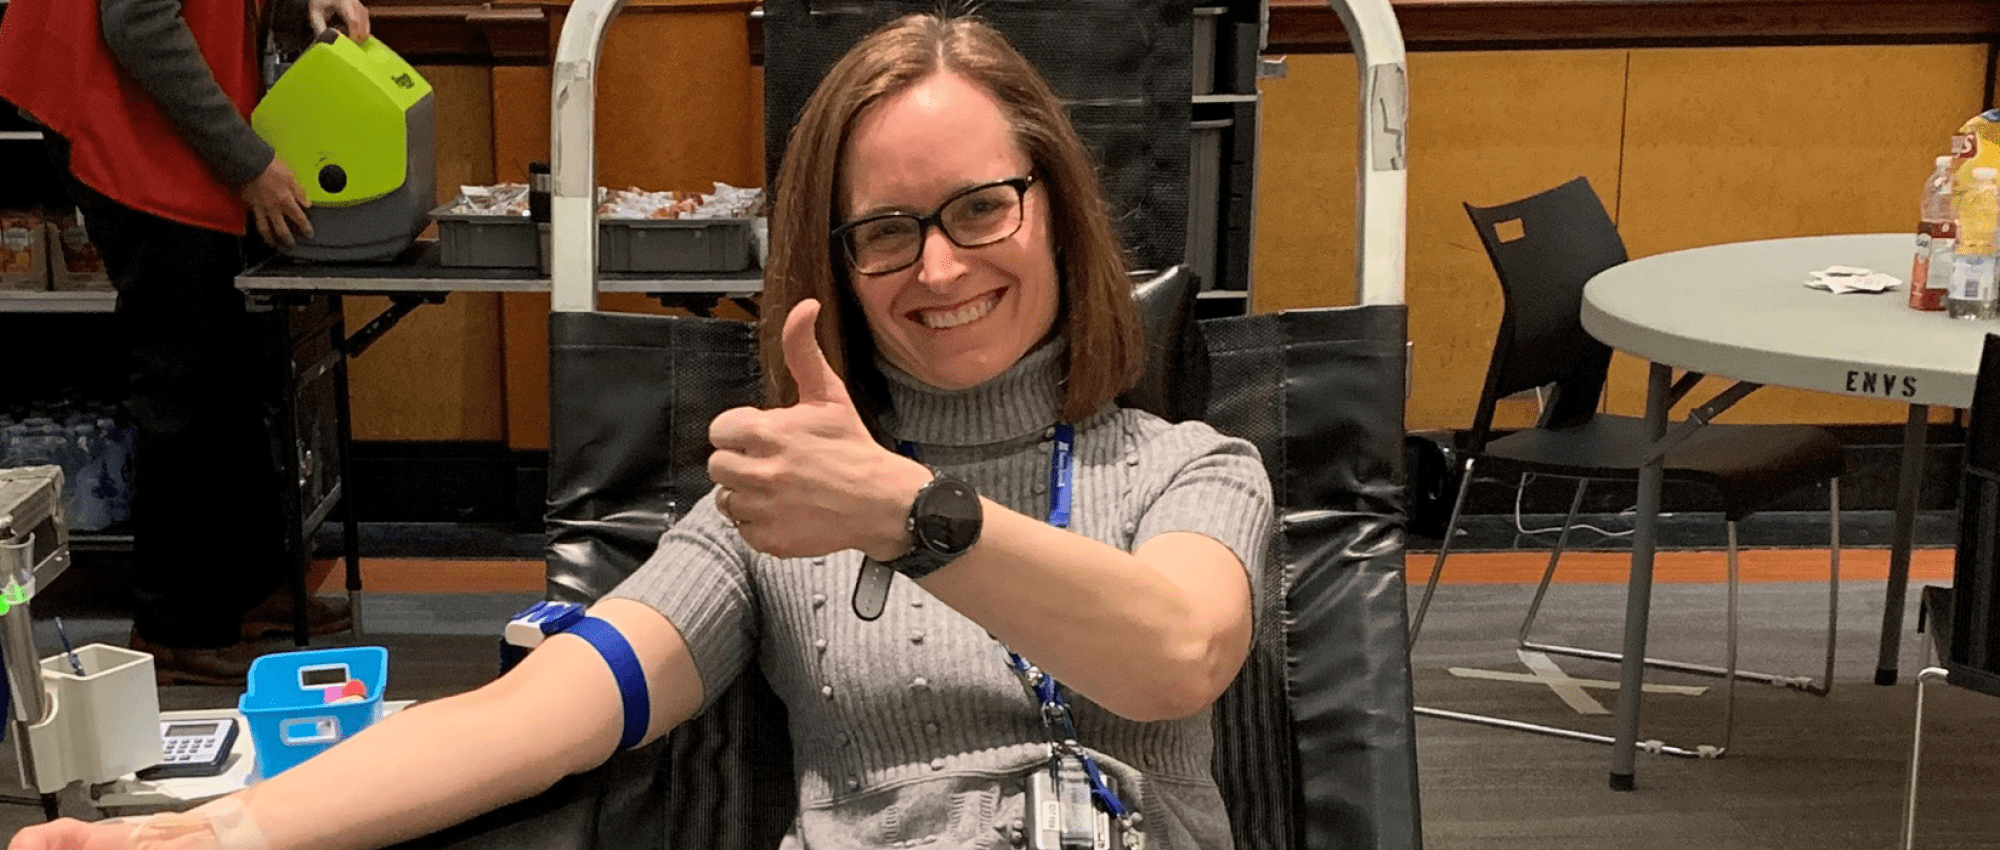 Doctors bracing for the impact of COVID-19 are finding time to give blood and encourage others to do the same.